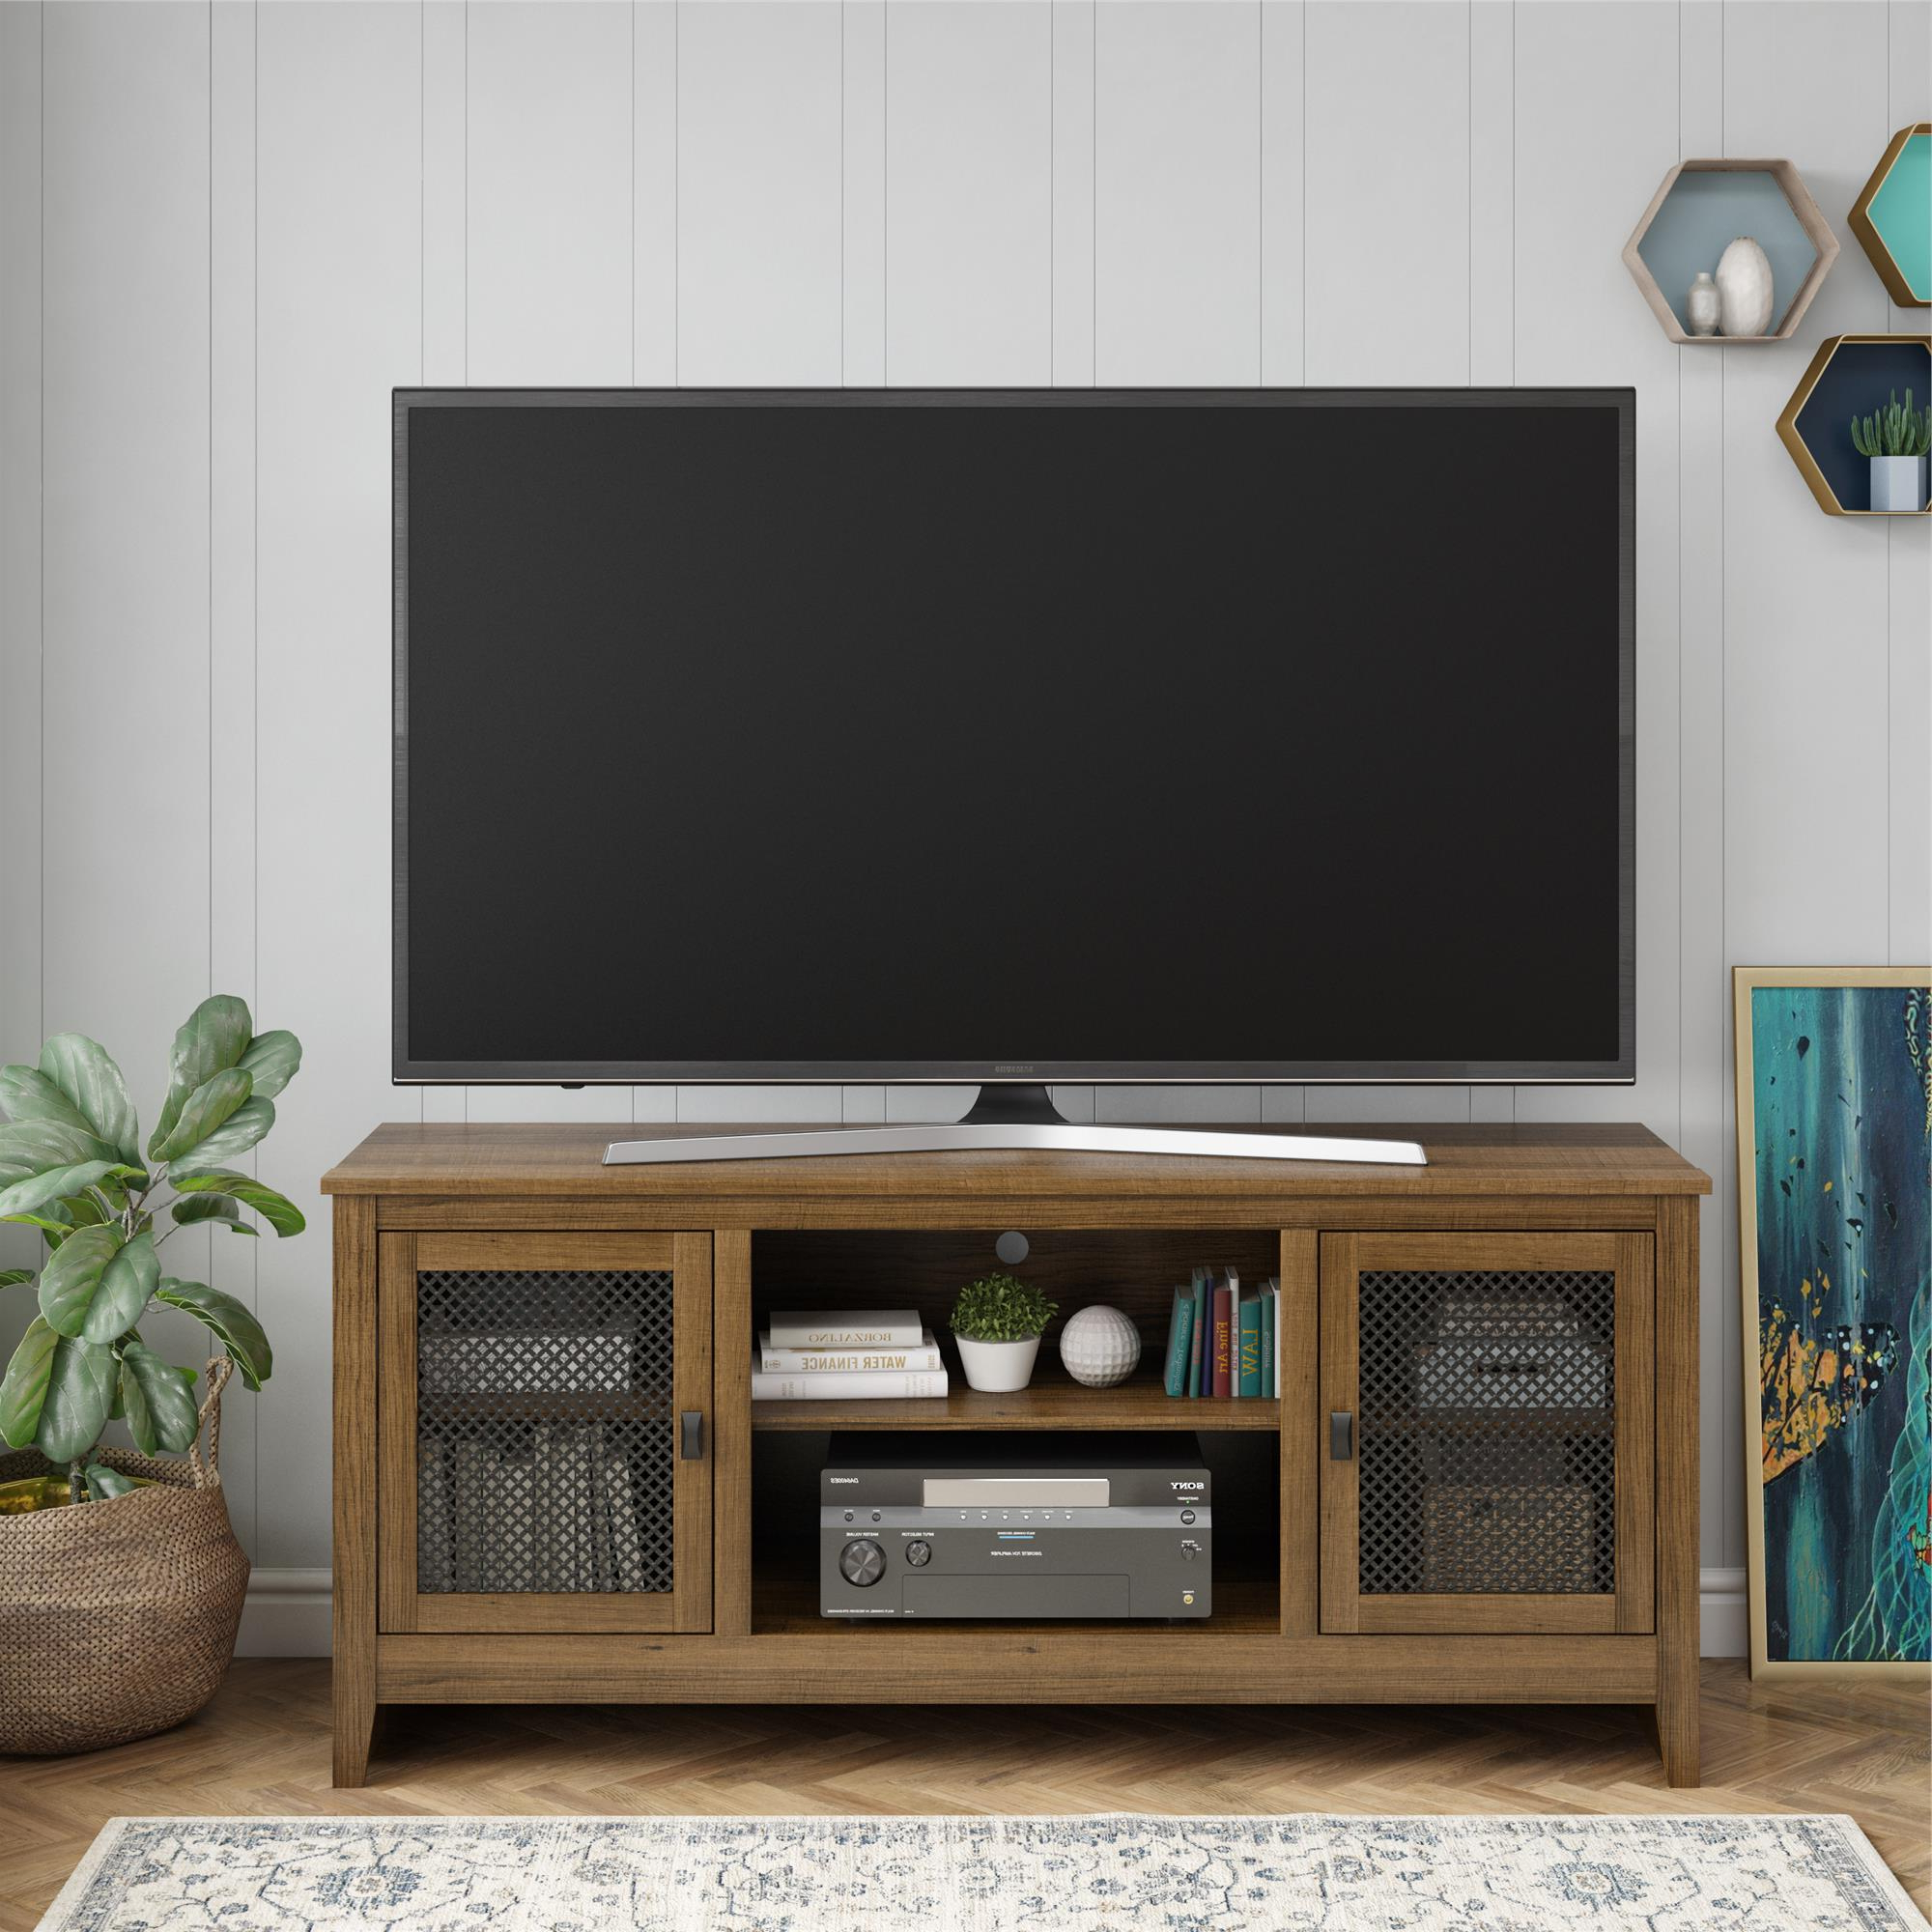 """Ameriwood Home Paradise Valley Tv Stand For Tvs Up To 65 For Stamford Tv Stands For Tvs Up To 65"""" (View 2 of 20)"""